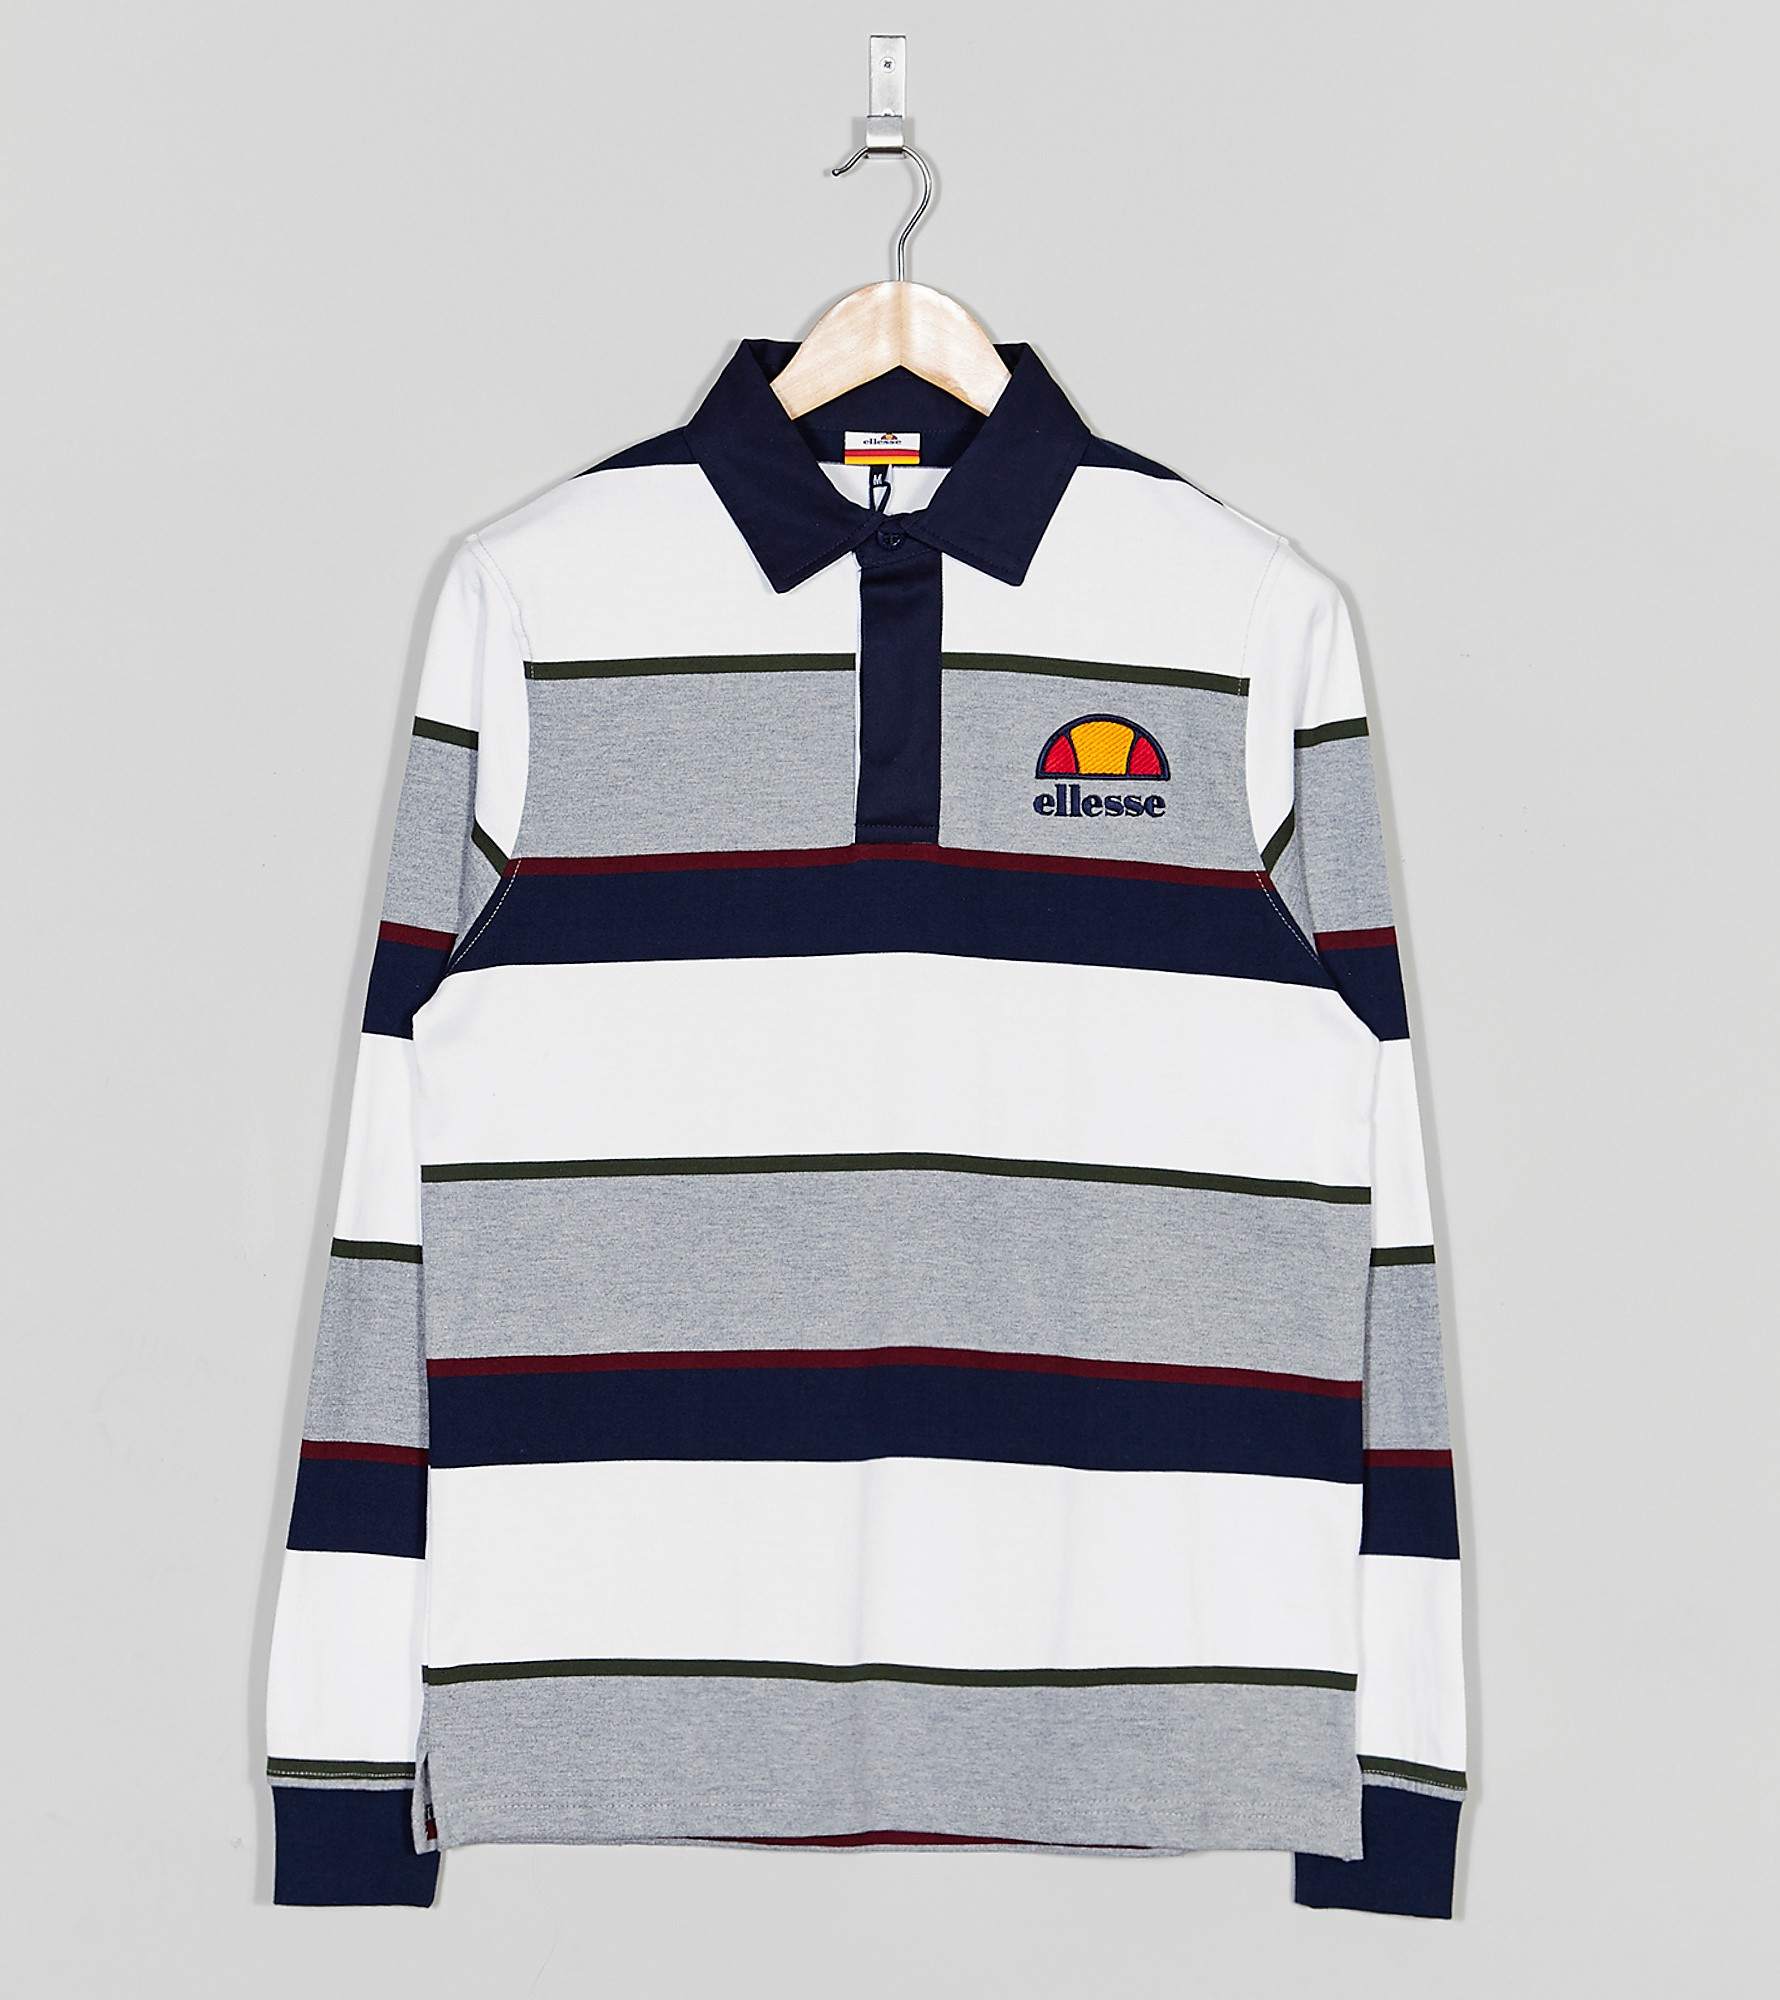 Ellesse Parisse Striped Rugby Shirt  size Exclusive